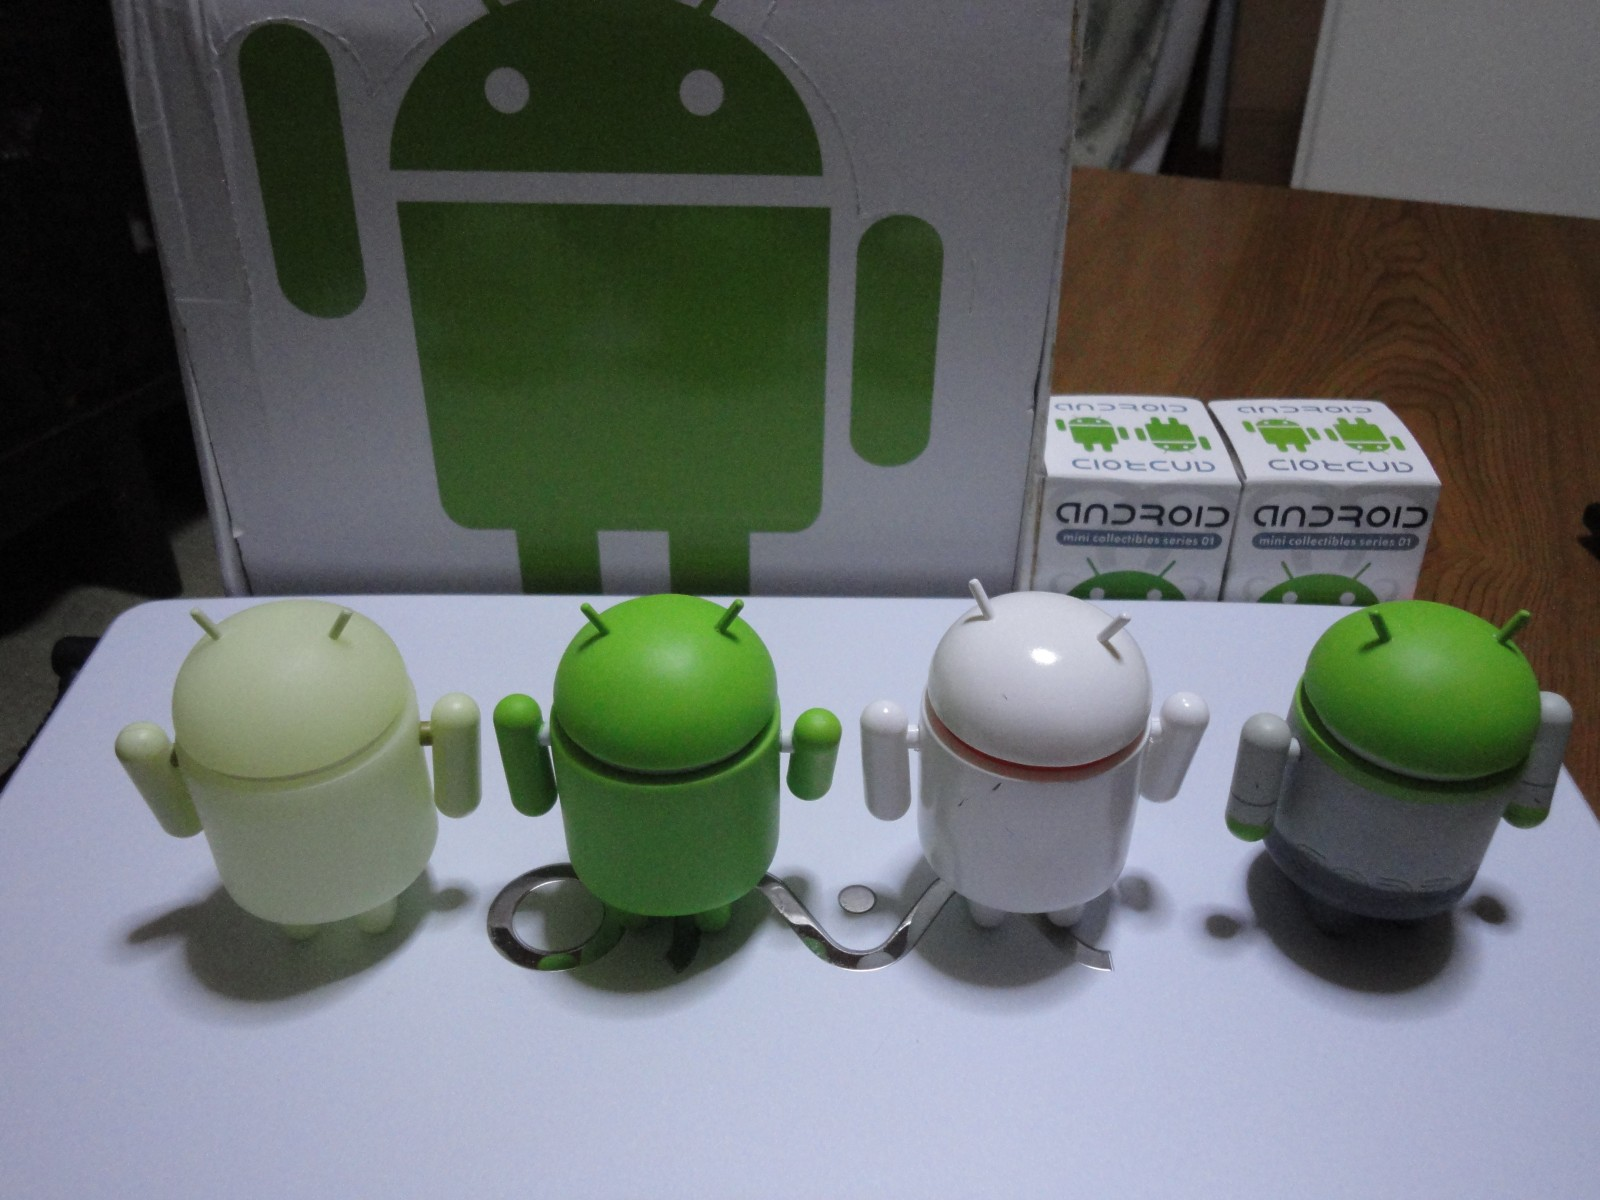 android_mini_collectibles01_04.jpg